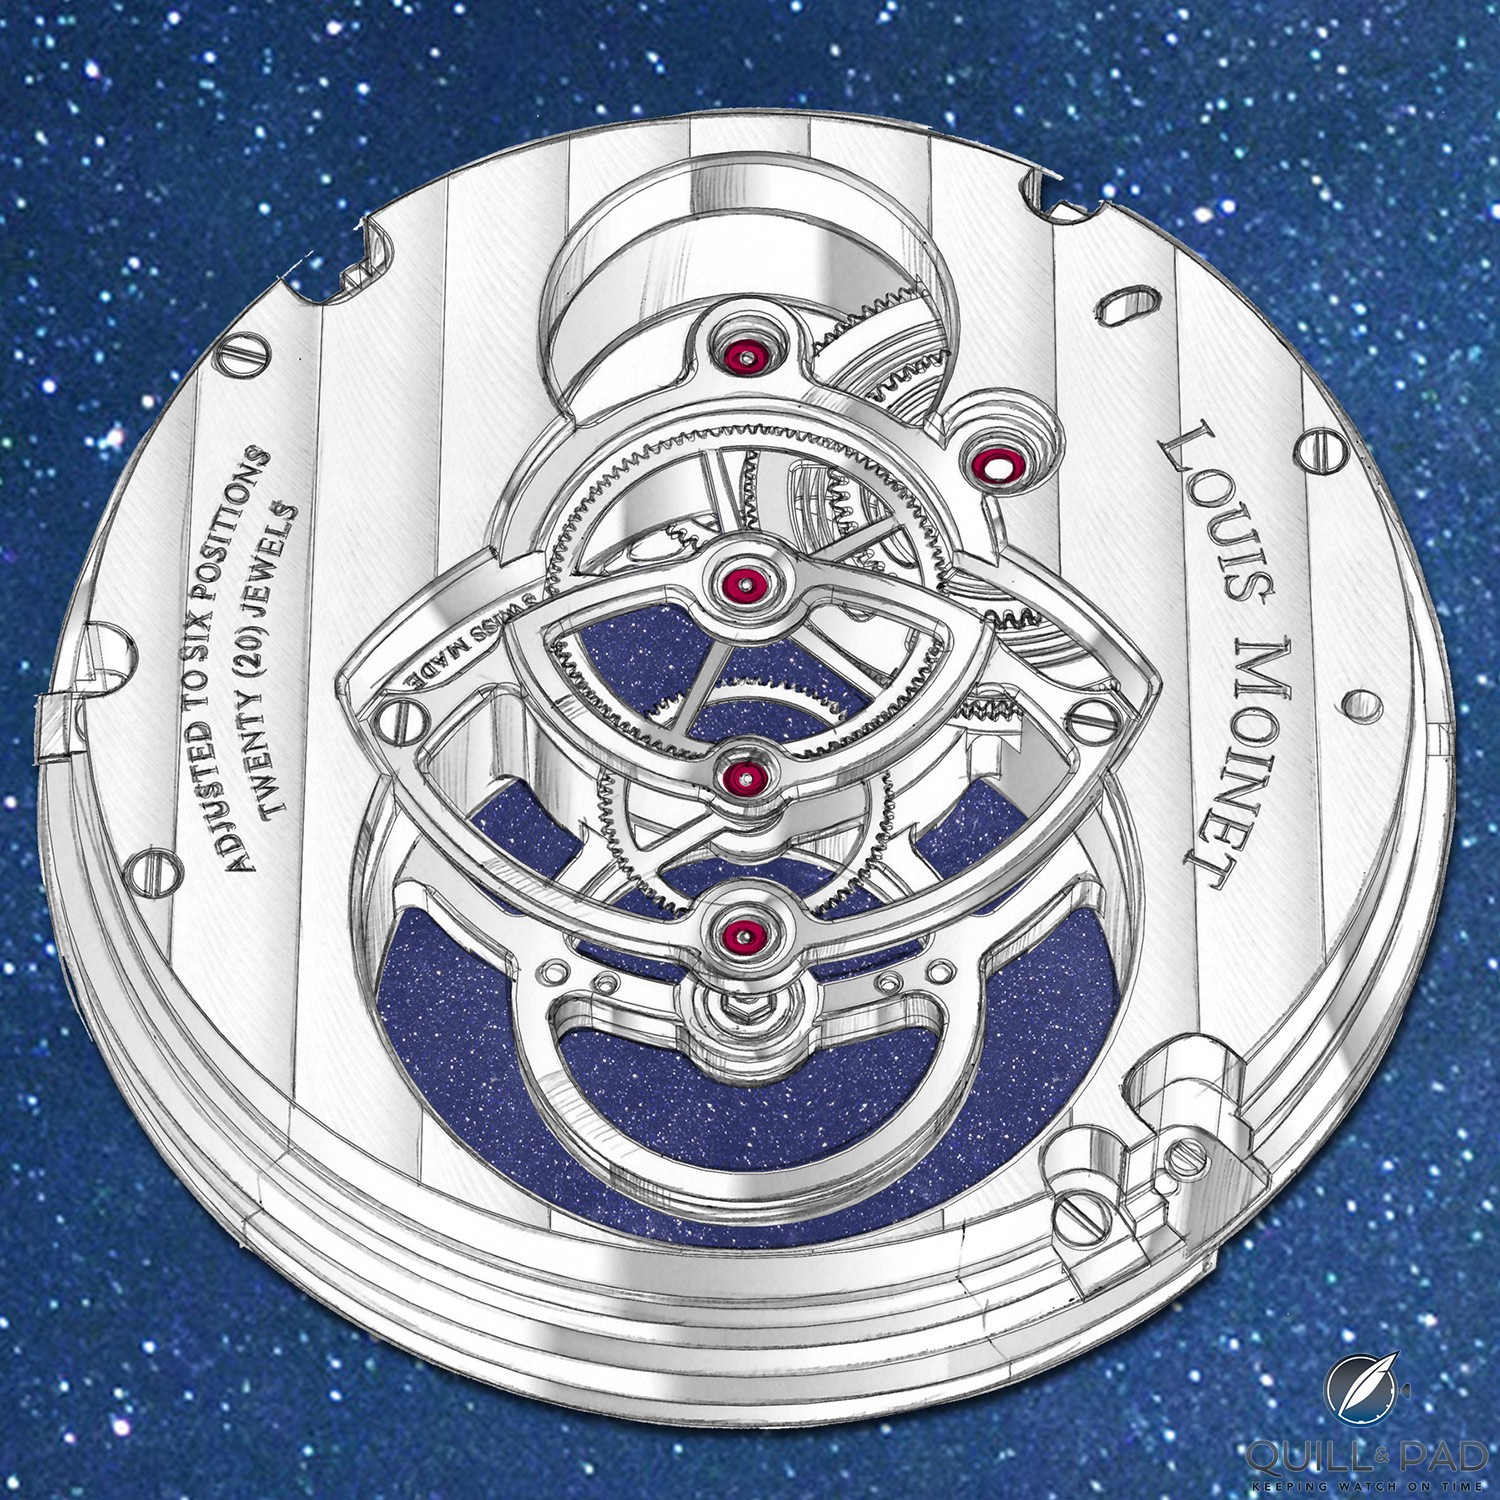 See-though movement of the Louis Moinet Spacewalker